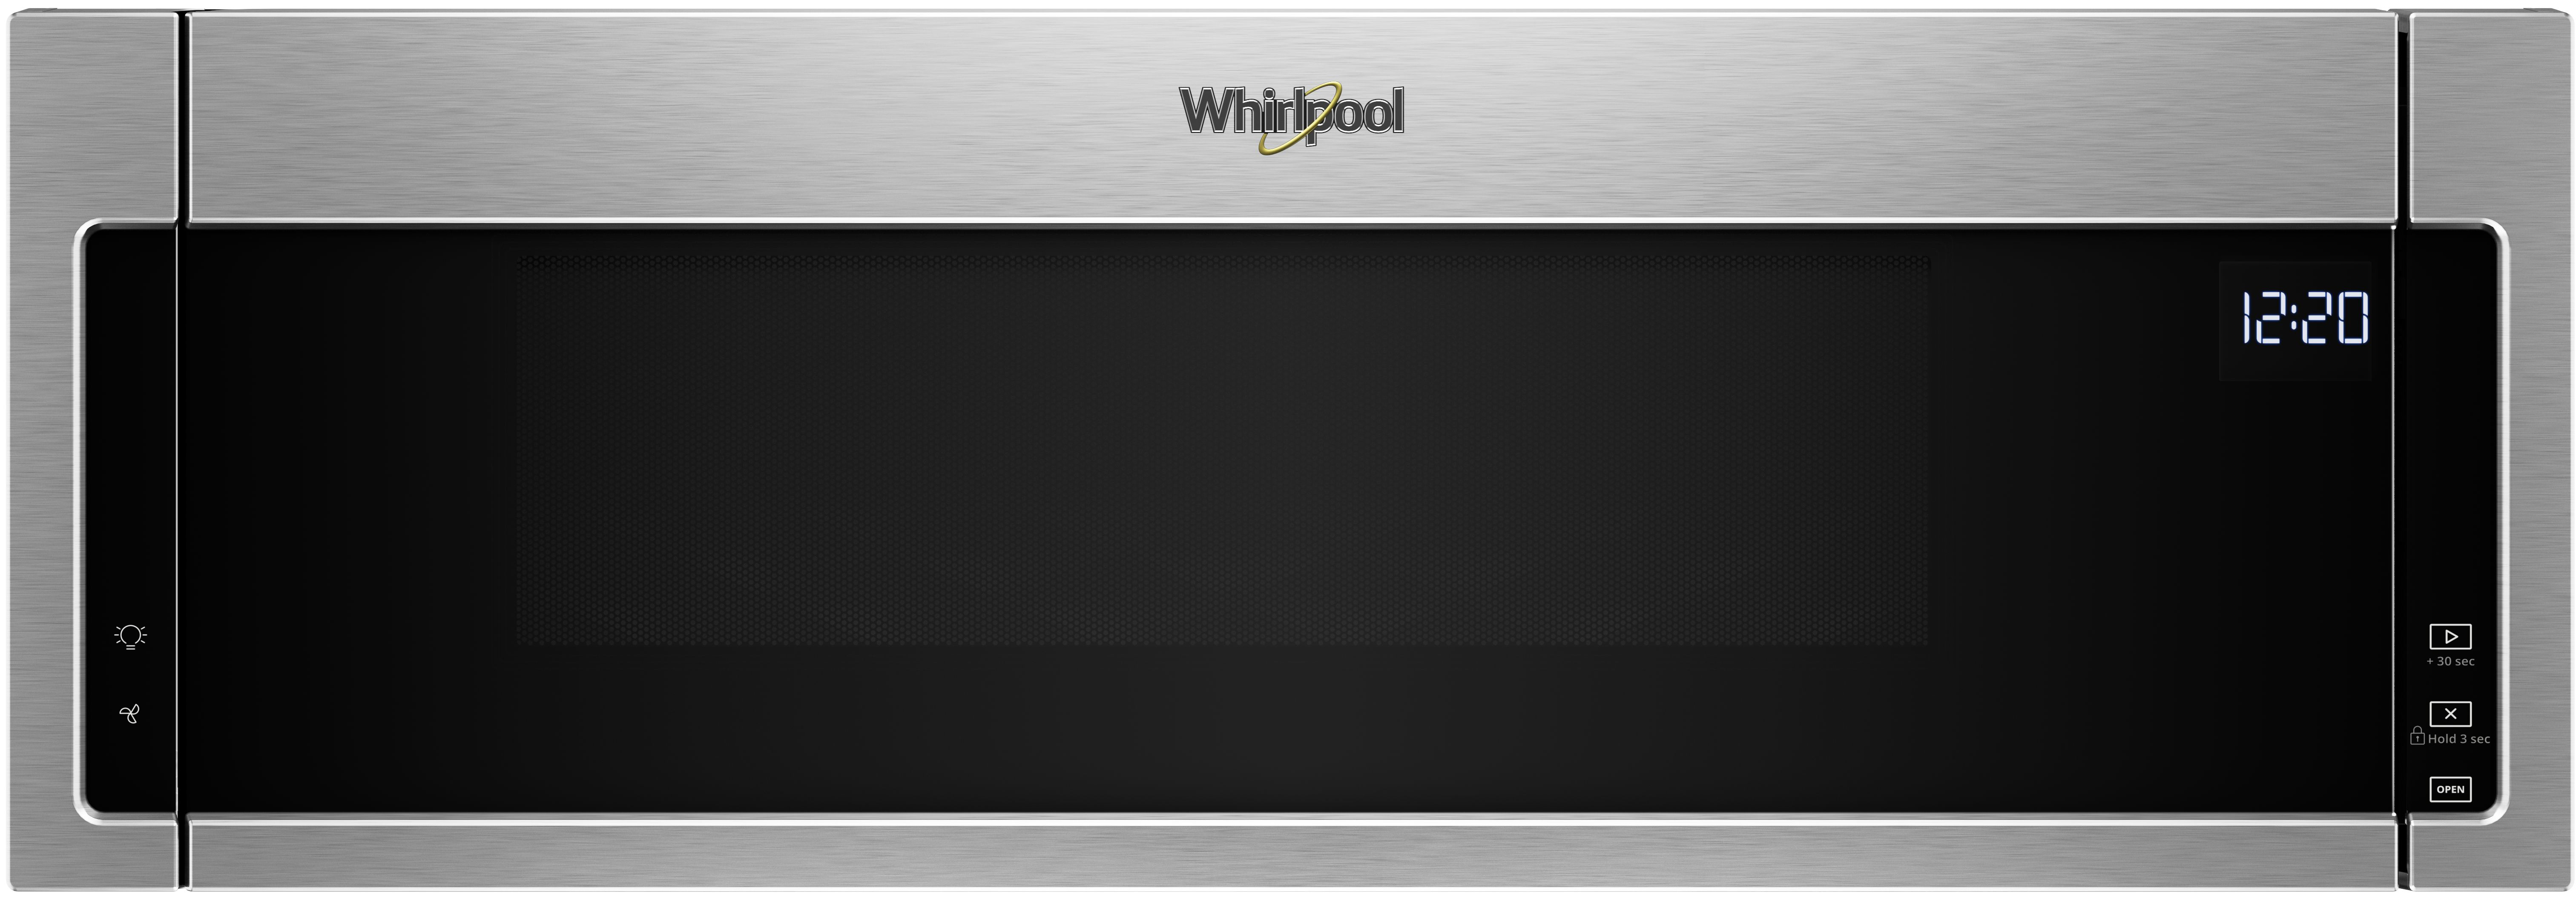 Whirlpool Over The Range Microwave Black On Stainless Wml55011hs